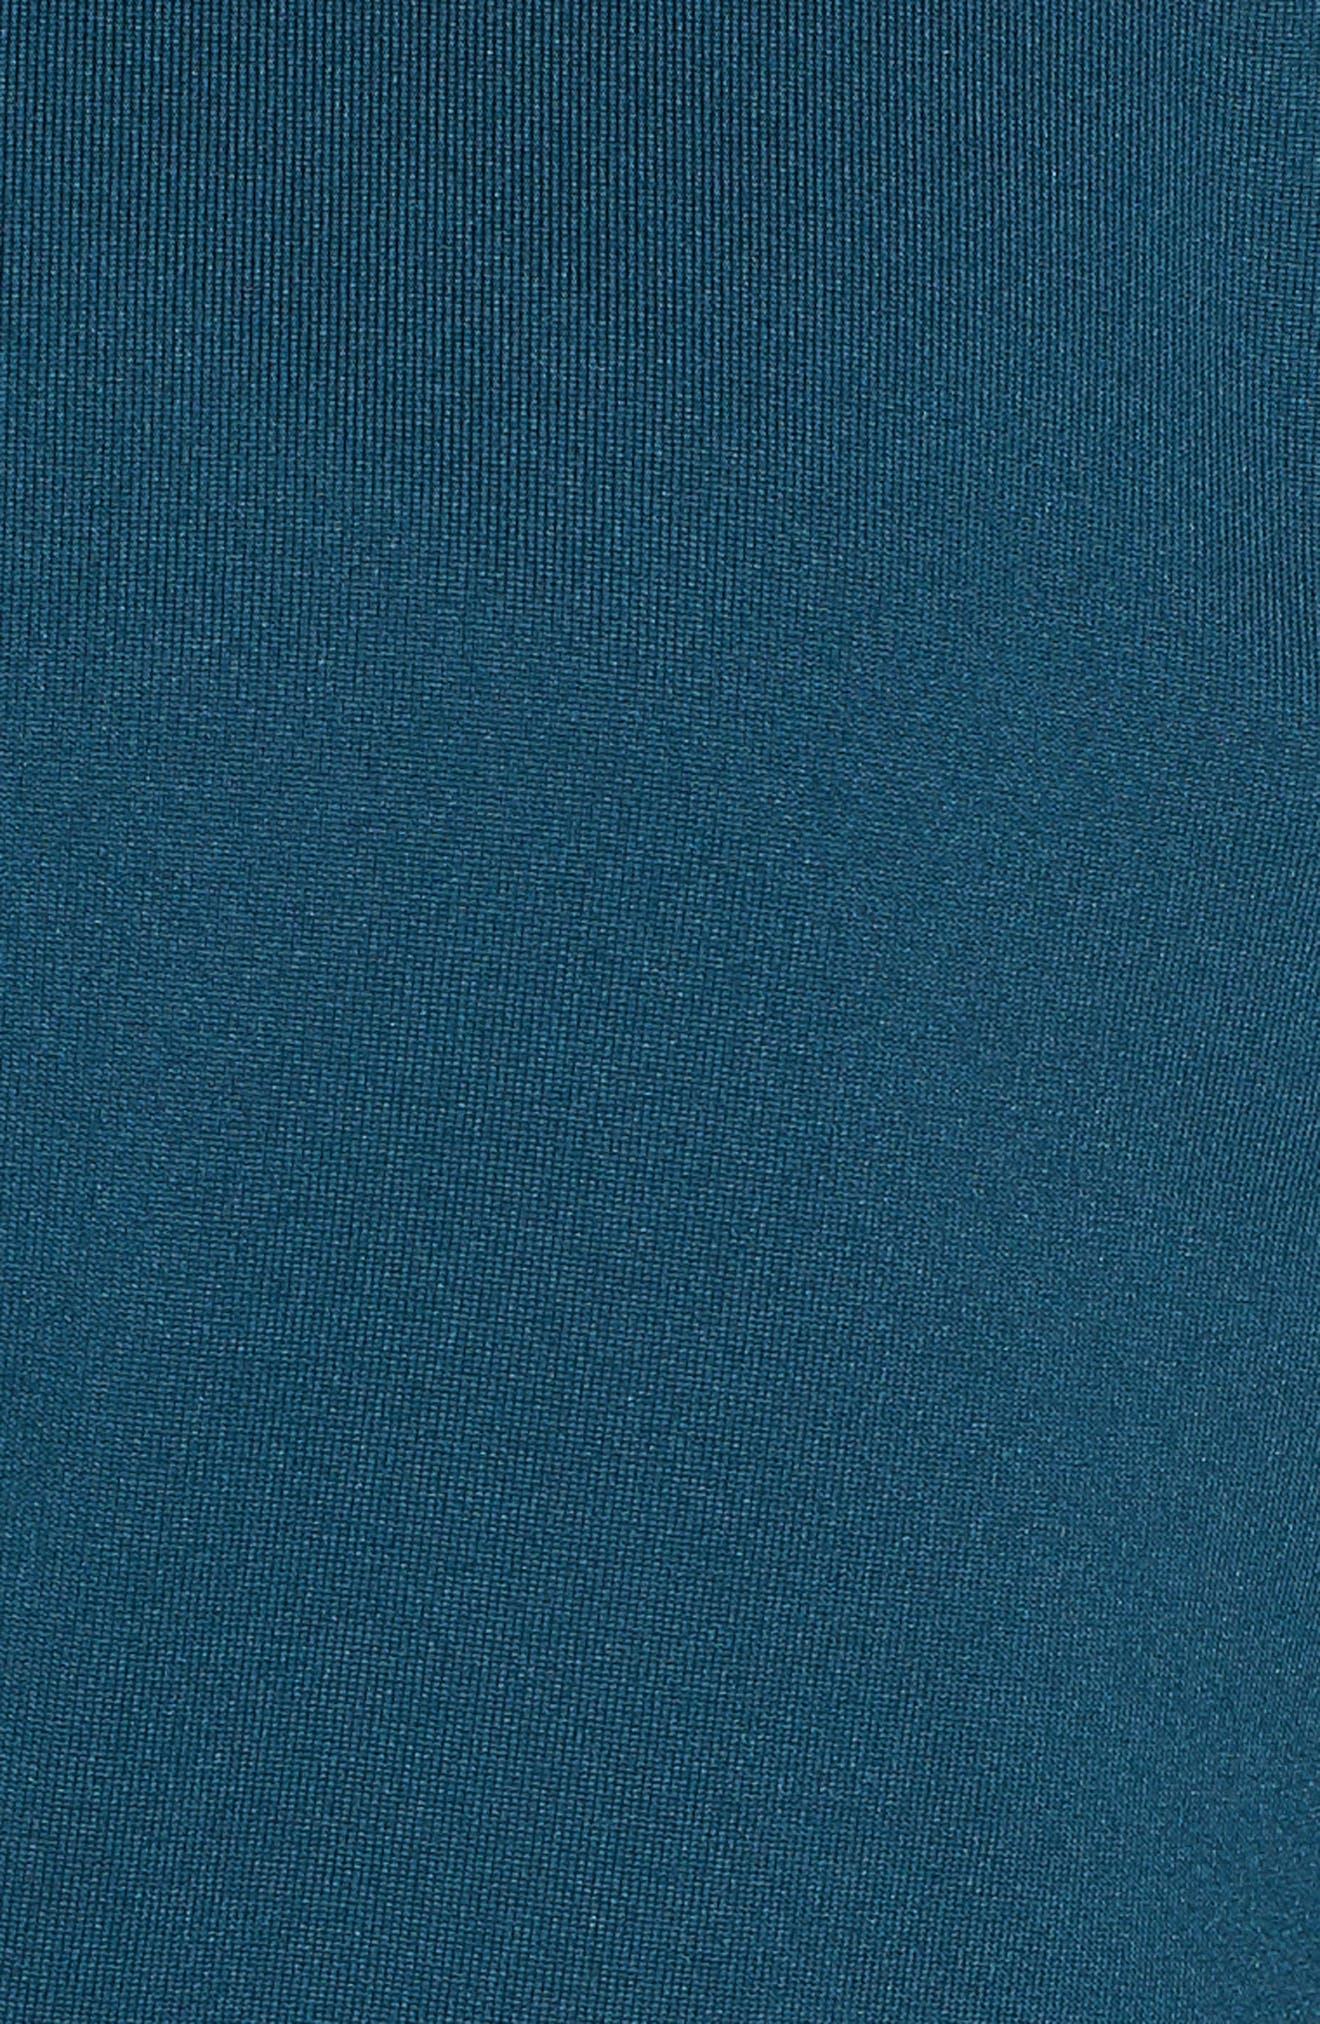 Taylor Track Jacket,                             Alternate thumbnail 7, color,                             TEAL ABYSS